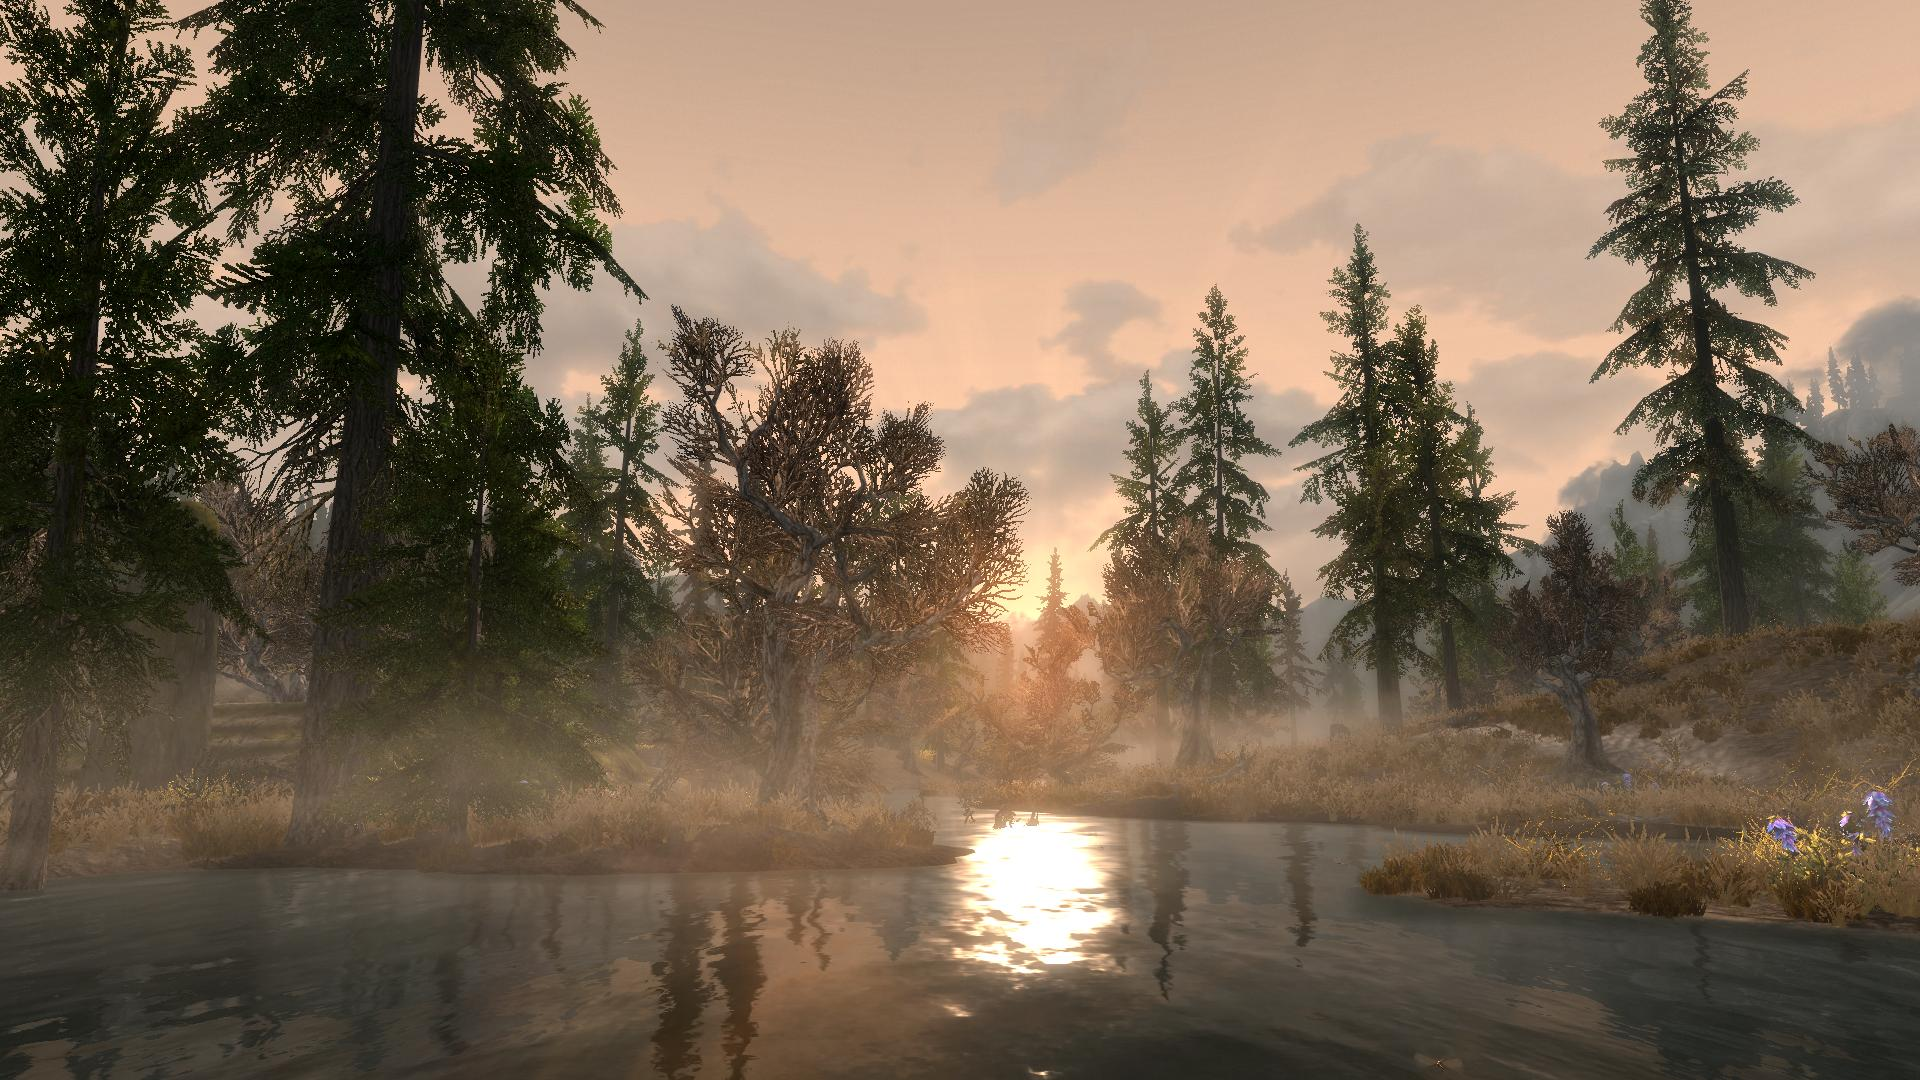 Best Skyrim Wallpaper Screenshot Pictures Collection  Webgranth 1920x1080